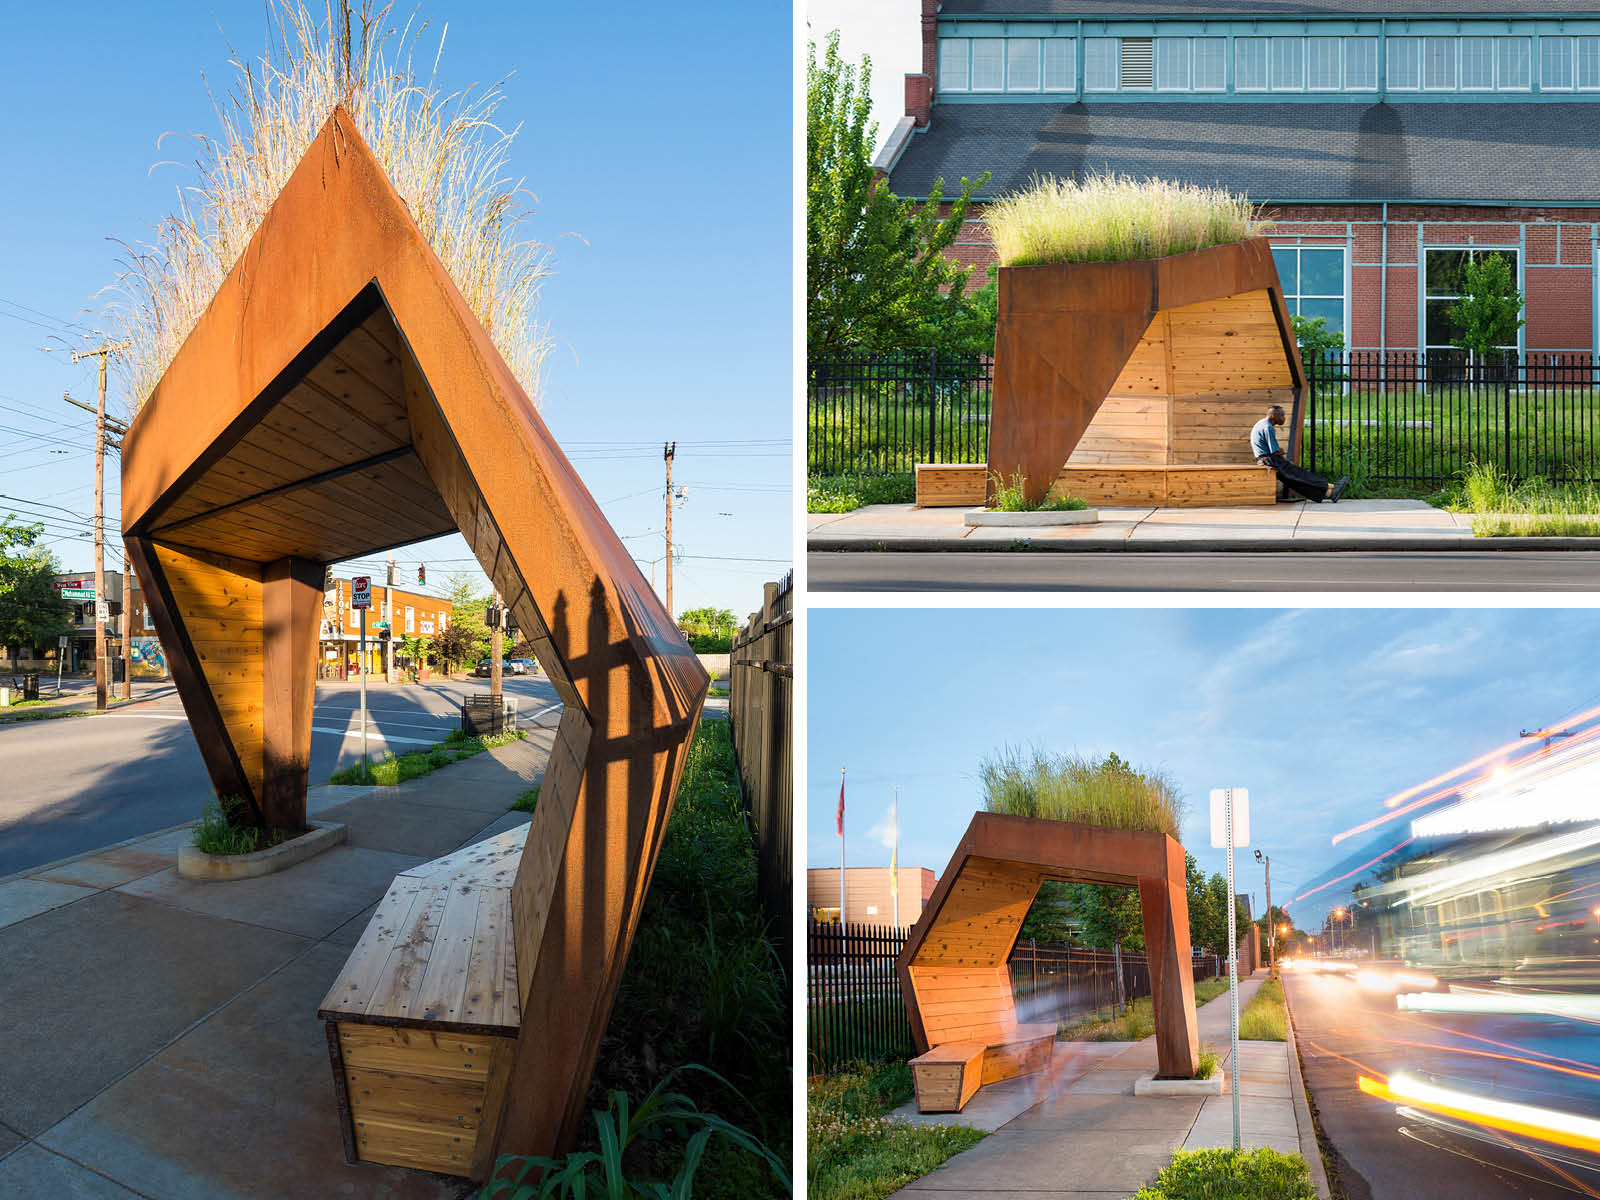 smart-bus-stop-green-roof-grid